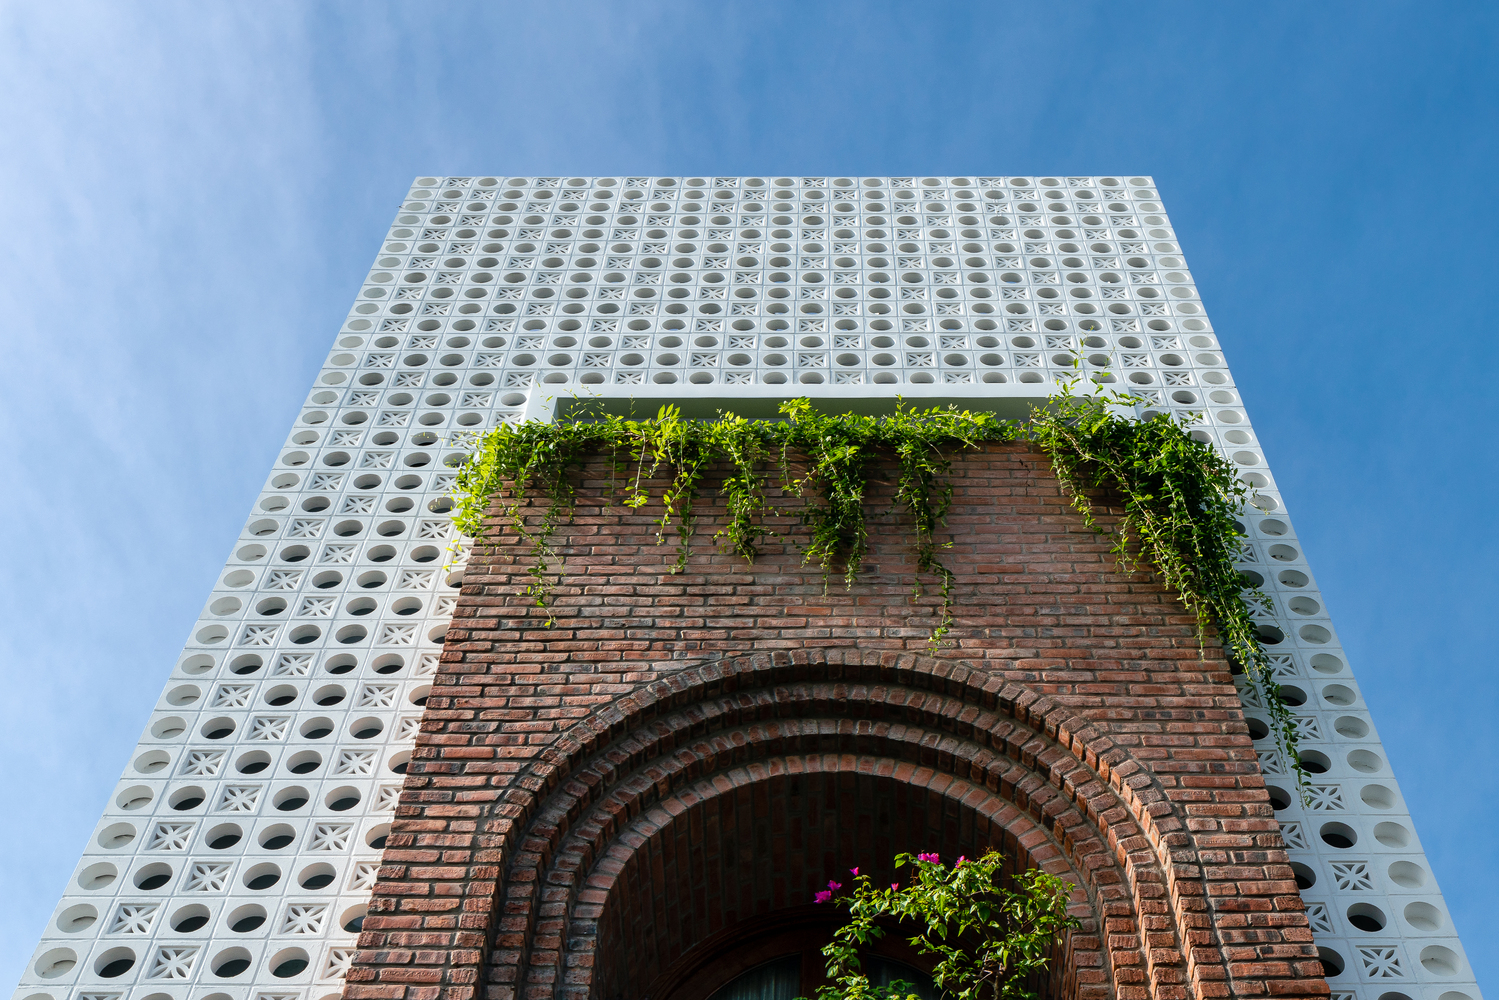 A three-story building boasts a white perforated facade and a brick arch for the entrance.